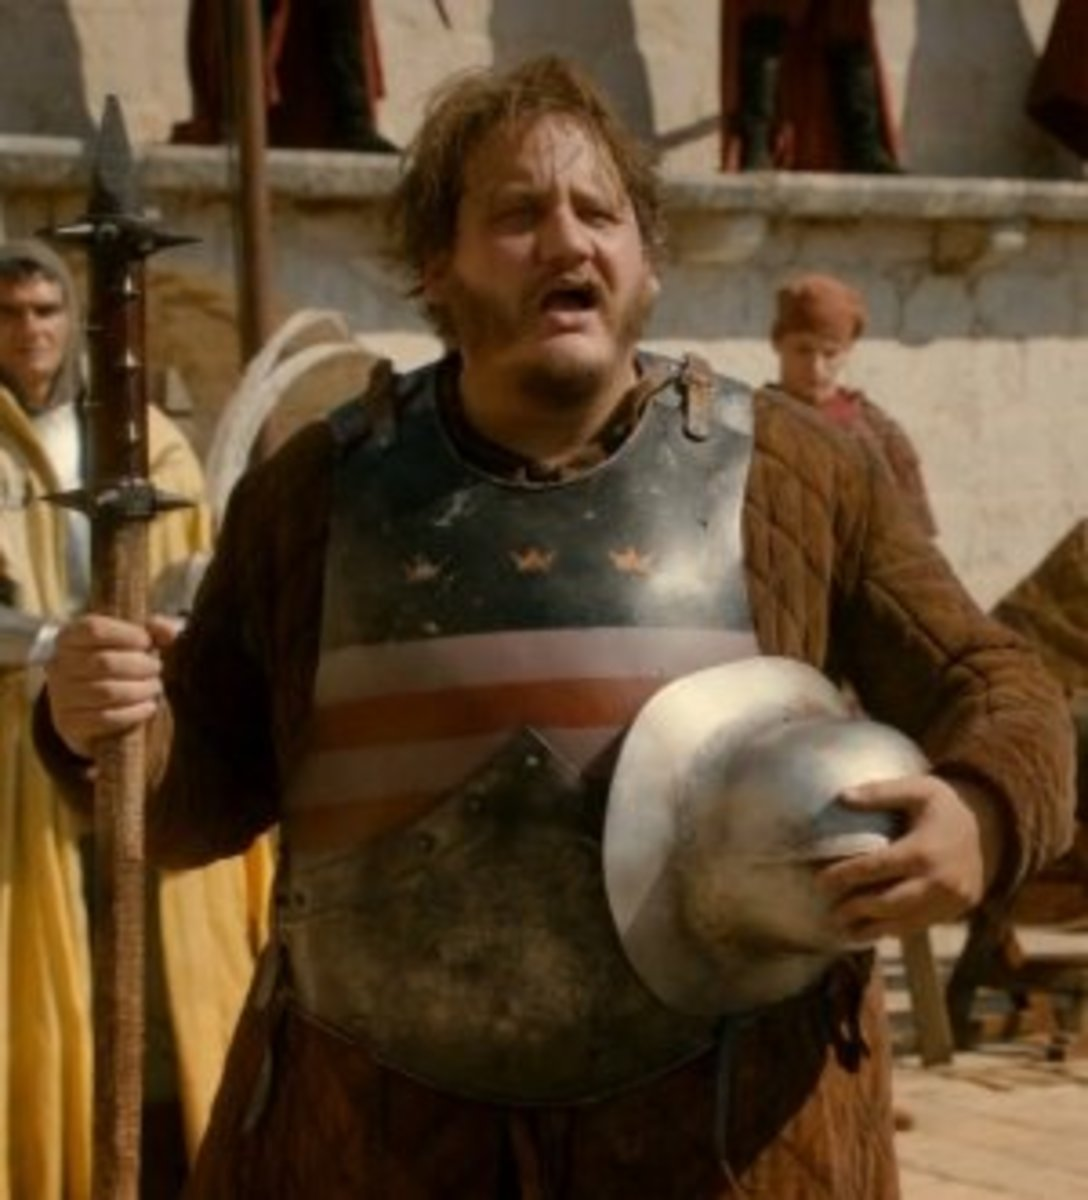 is-hbos-game-of-thrones-series-anti-american